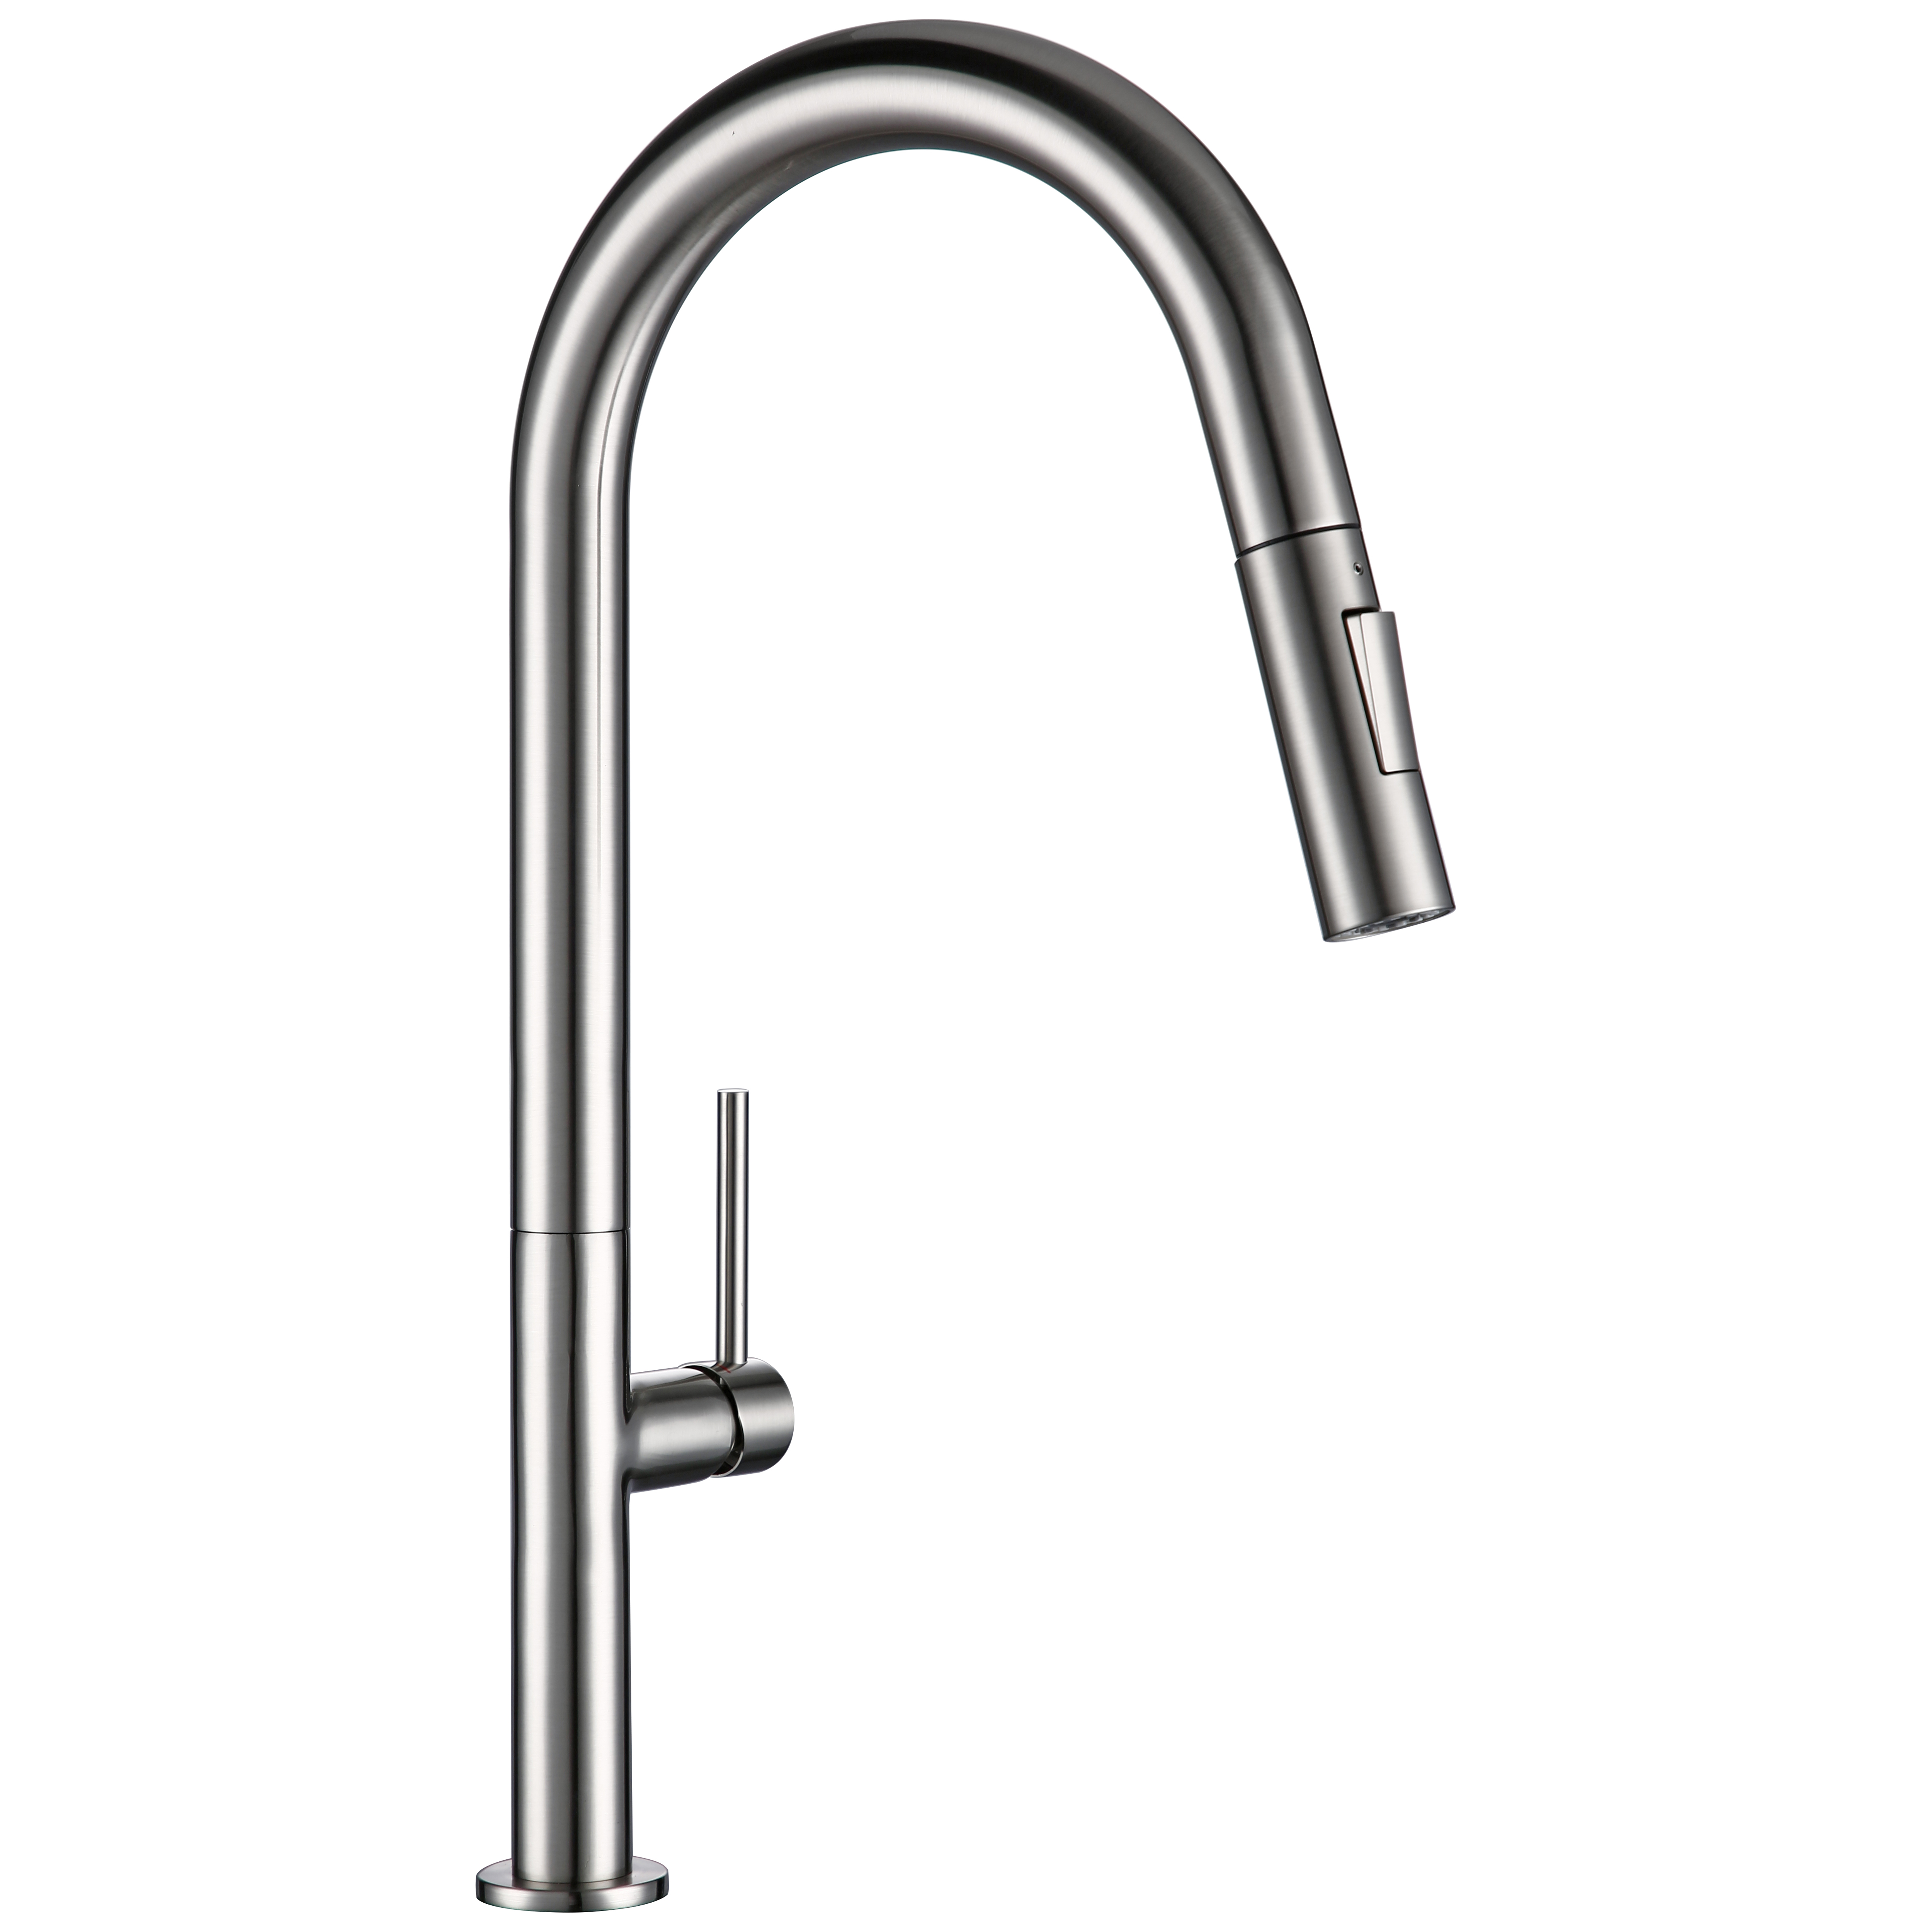 Brass Pull Out Kitchen Faucet Brushed Chrome And Black 360 Degree Rotation Kitchen Hot And Cold Water Sink Taps Kitchen Faucet